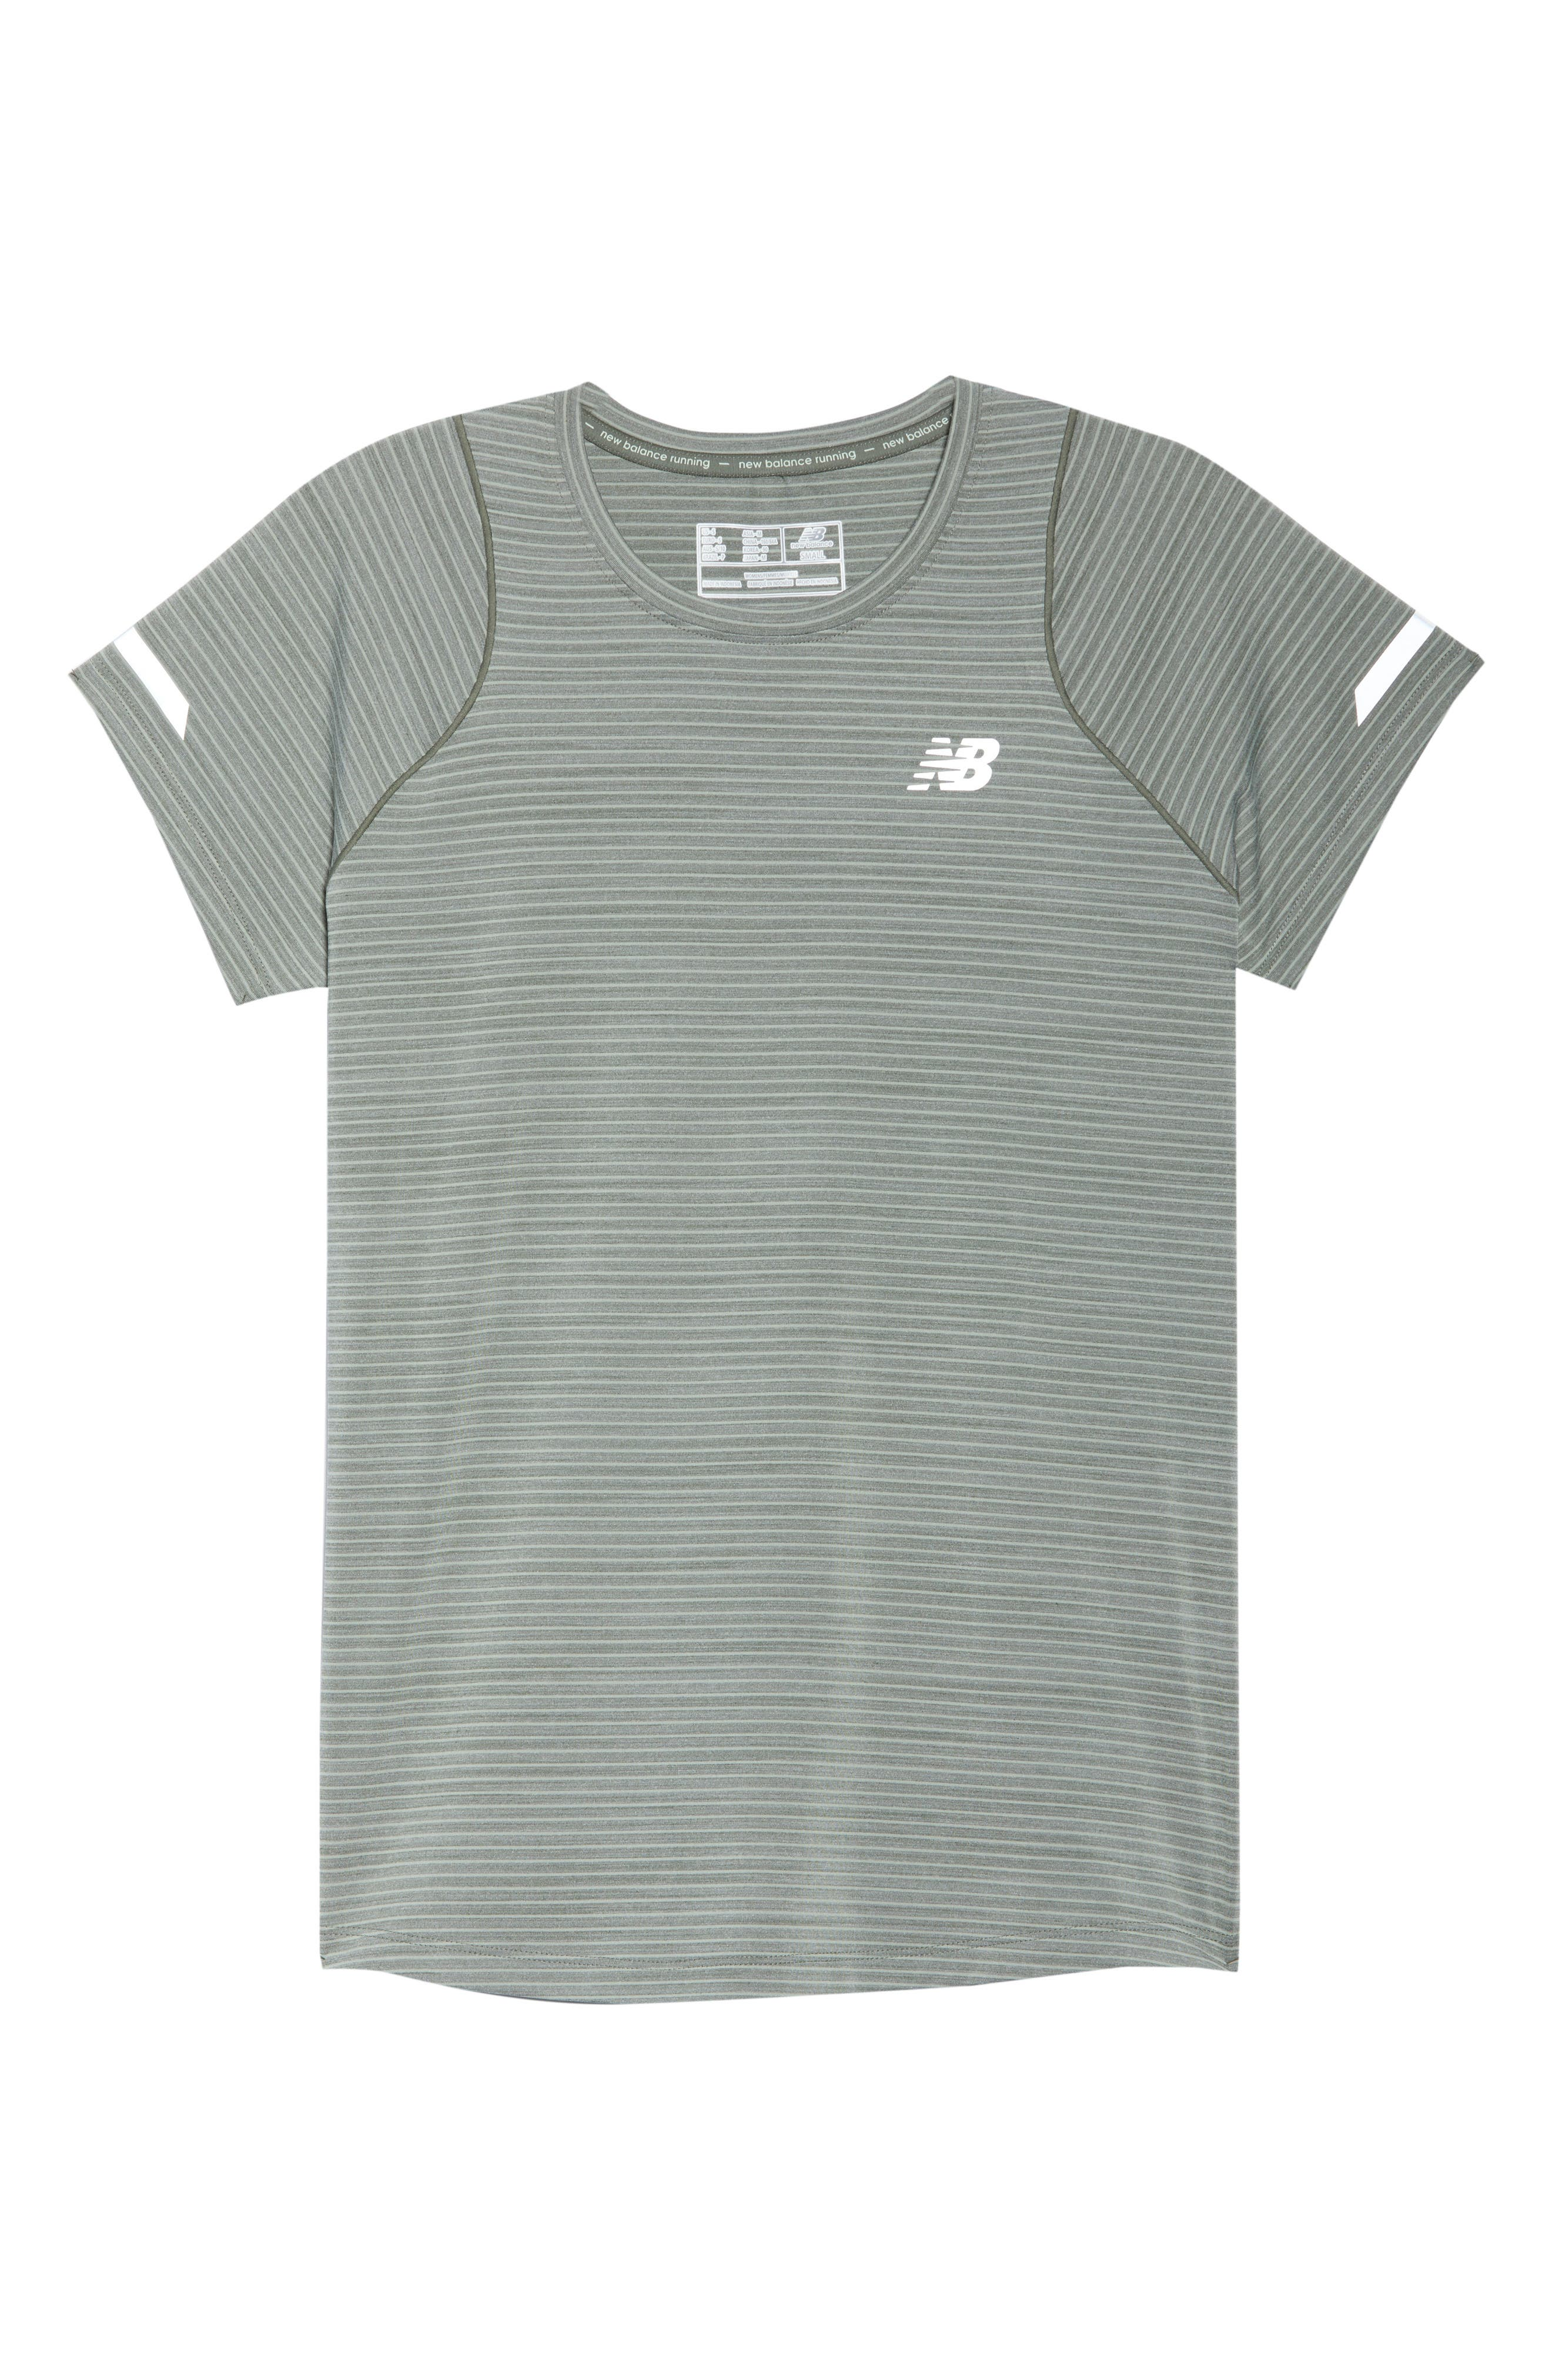 Seasonless Tee,                             Alternate thumbnail 7, color,                             Military Foliage Green